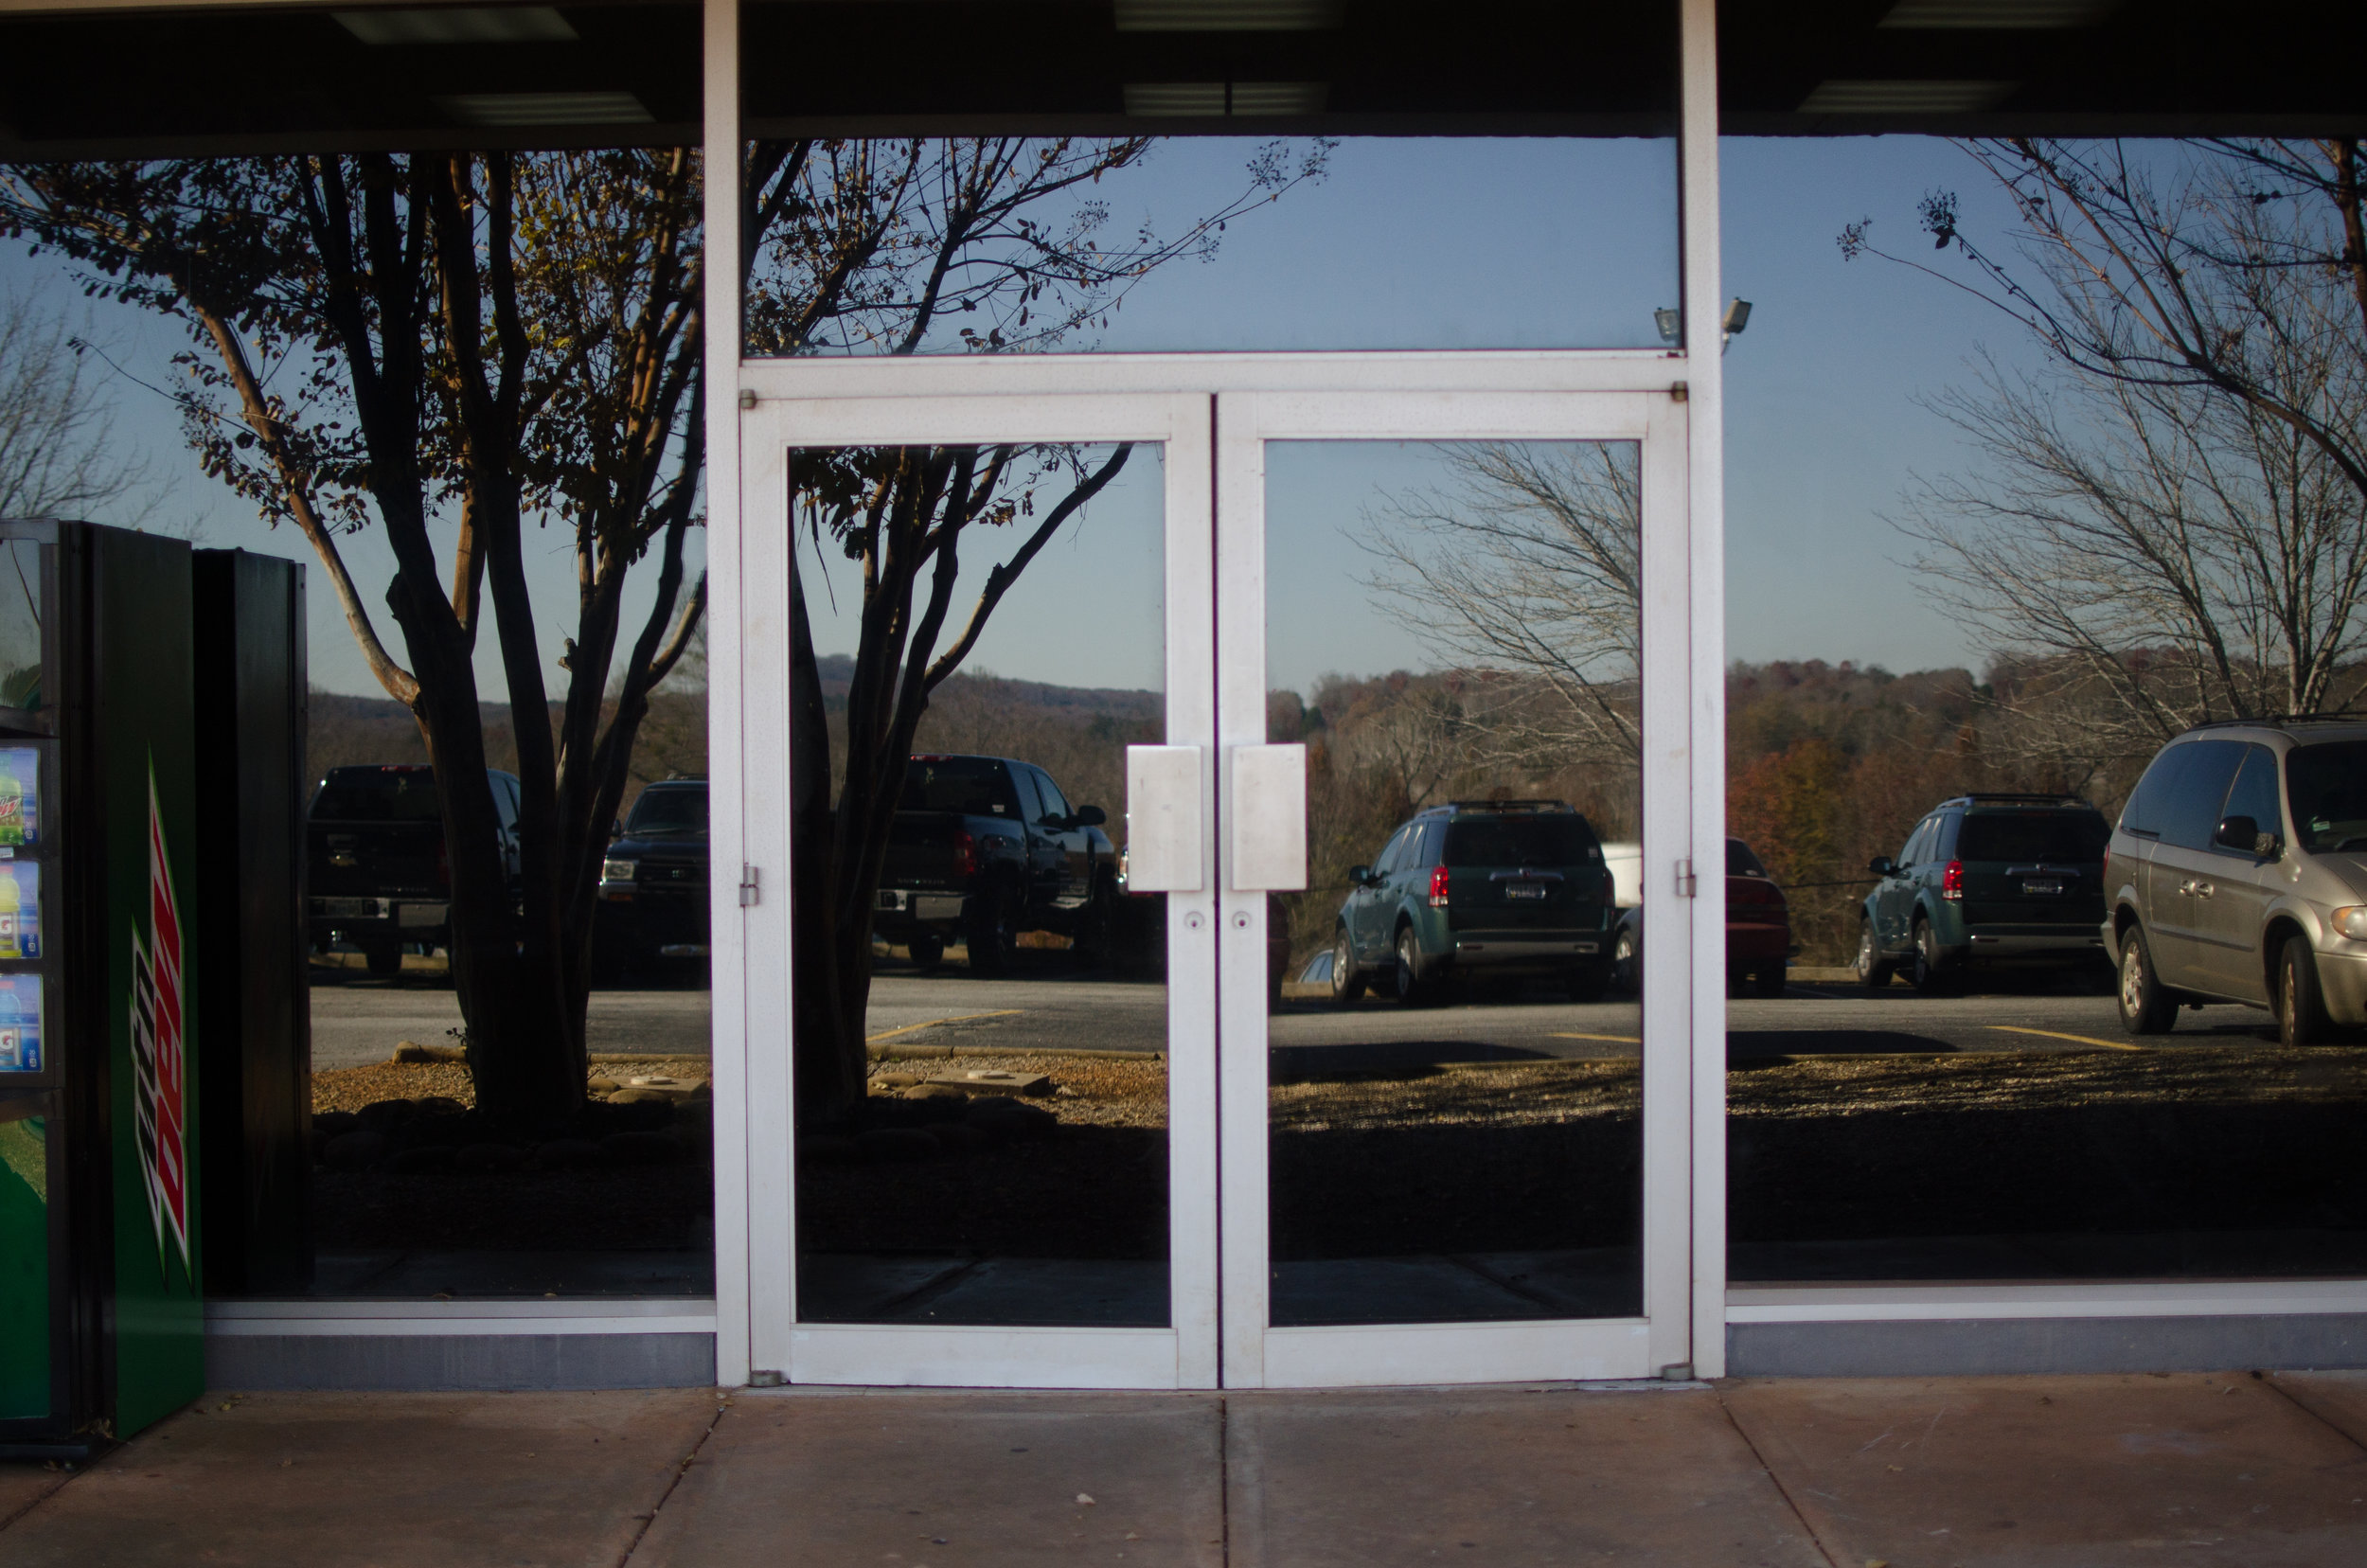 The Brisse Suite contains the language lab and a few classrooms. The entrance to this is outside behind the library. Follow the pathway through the parking lot and behind the library you will see two double doors.